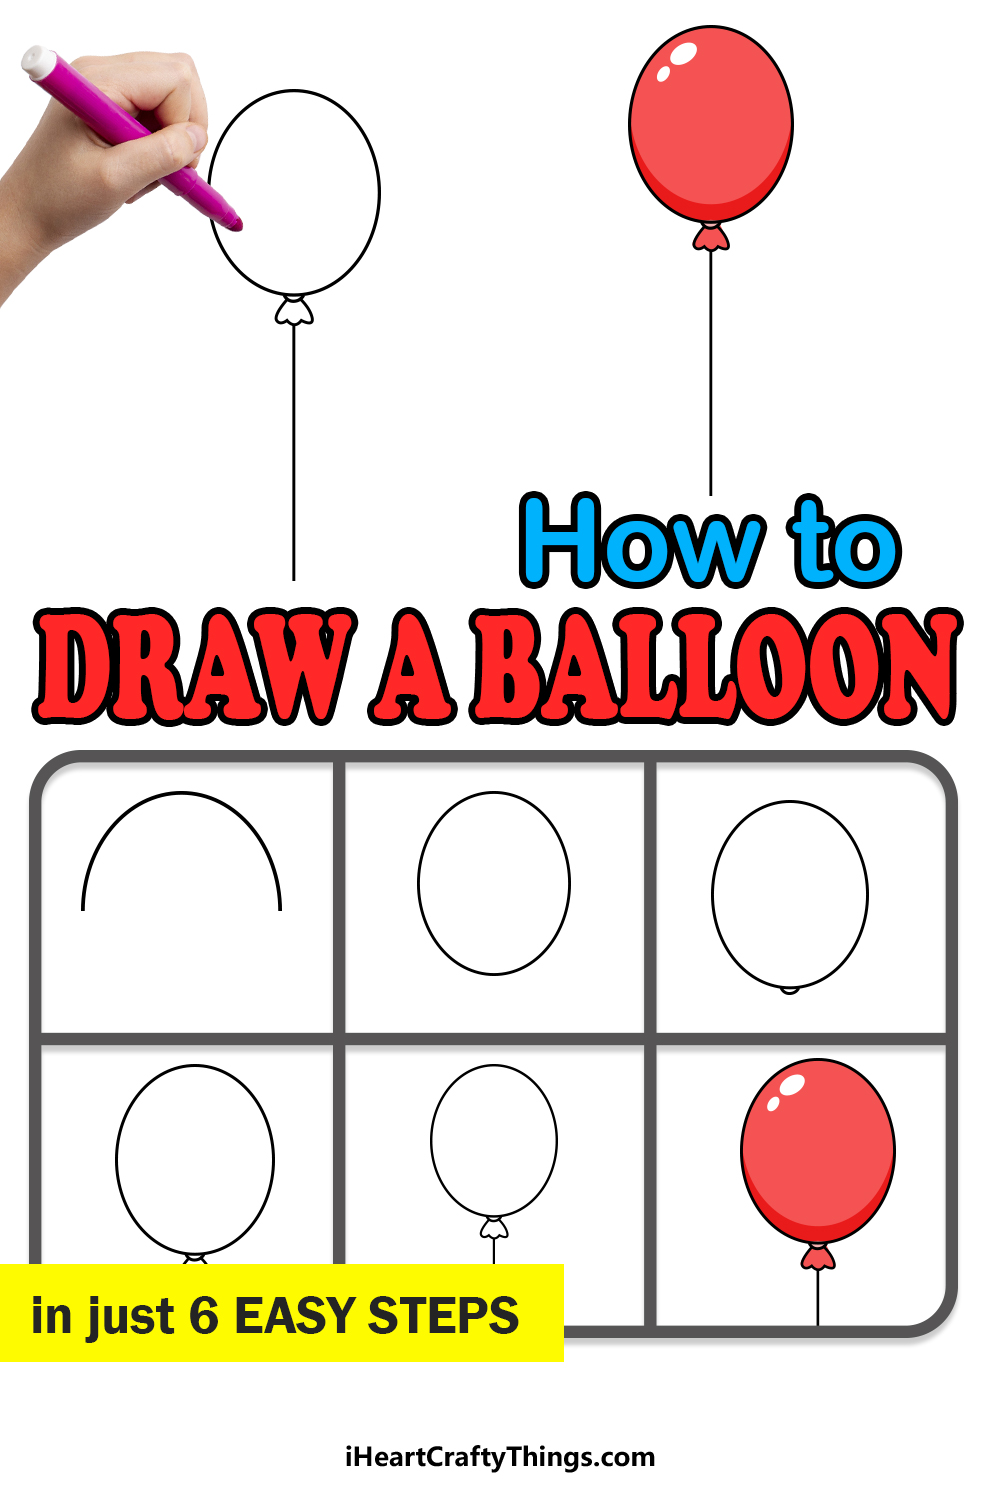 how to draw a balloon in 6 easy steps